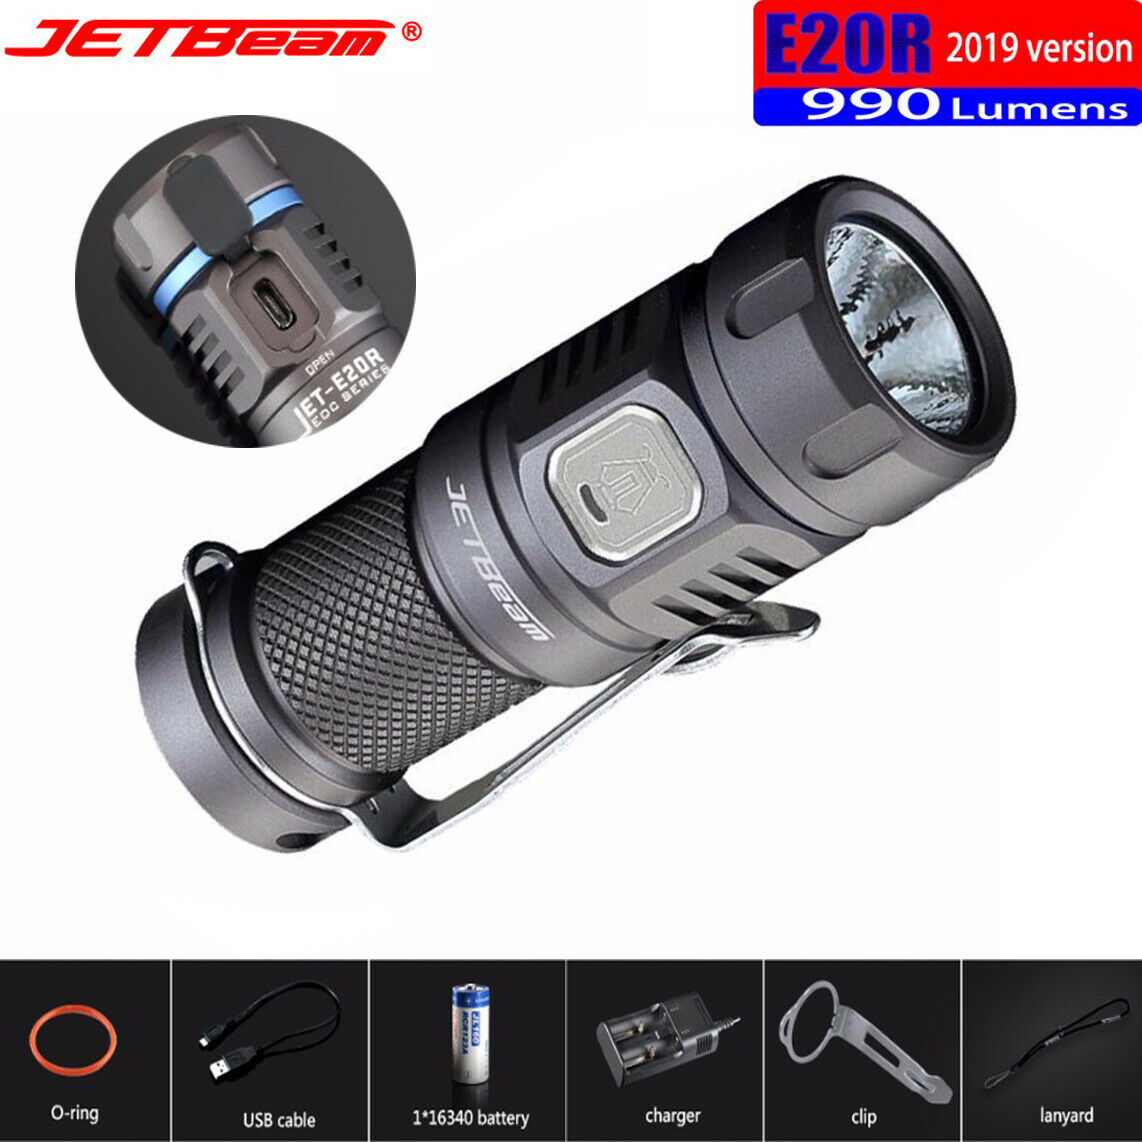 JETBeam 990 Lumens Flashlight